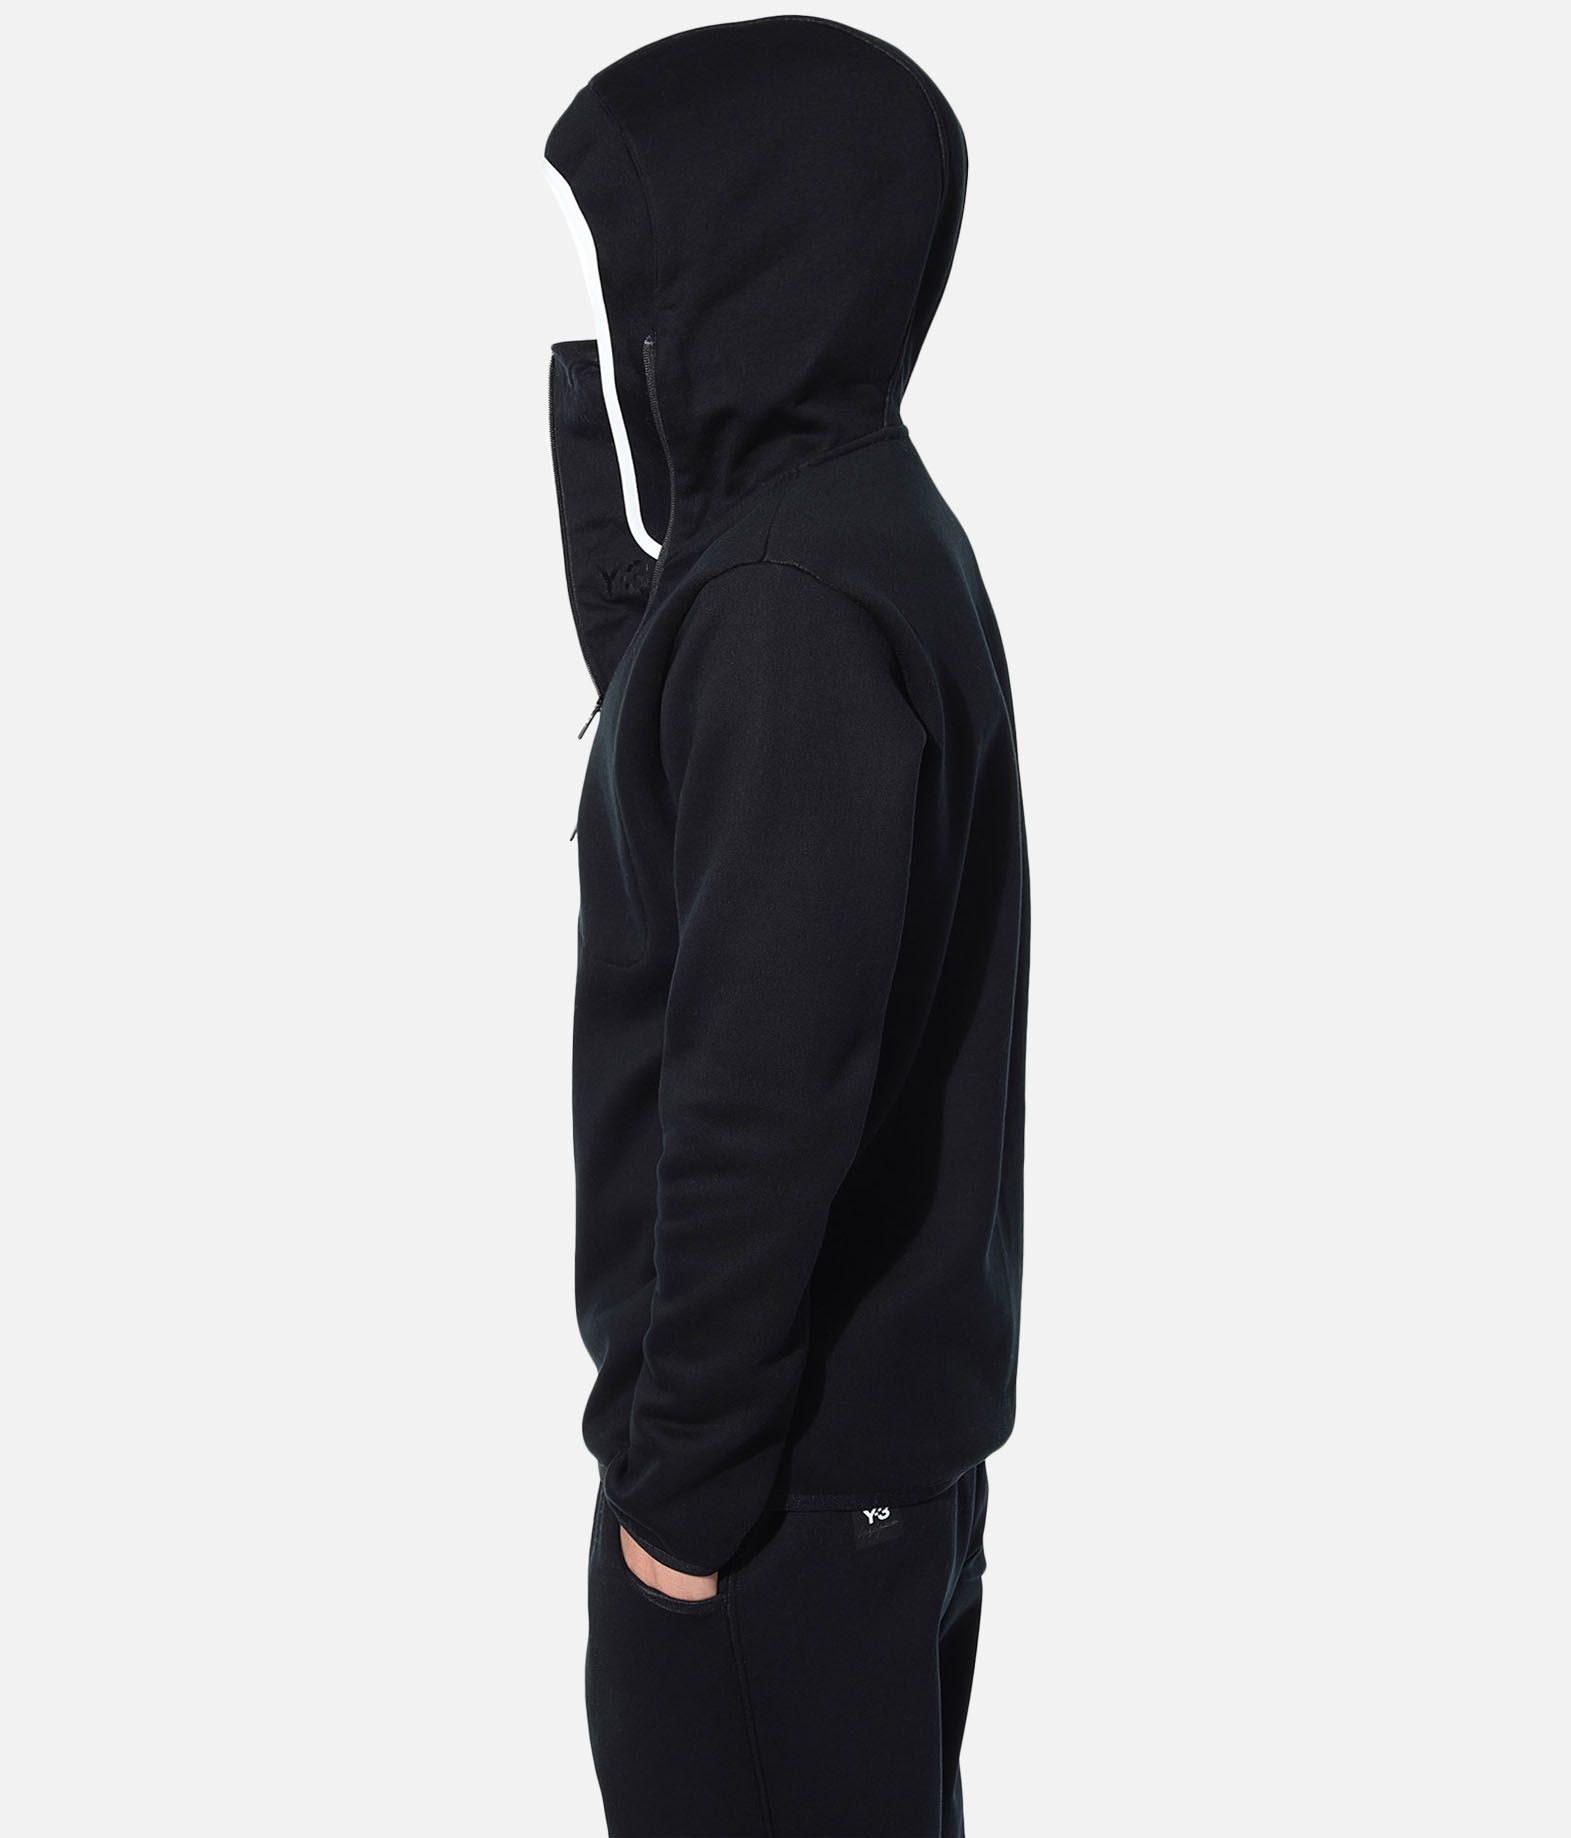 Y-3 Y-3 Binding Track Jacket Track top Man e